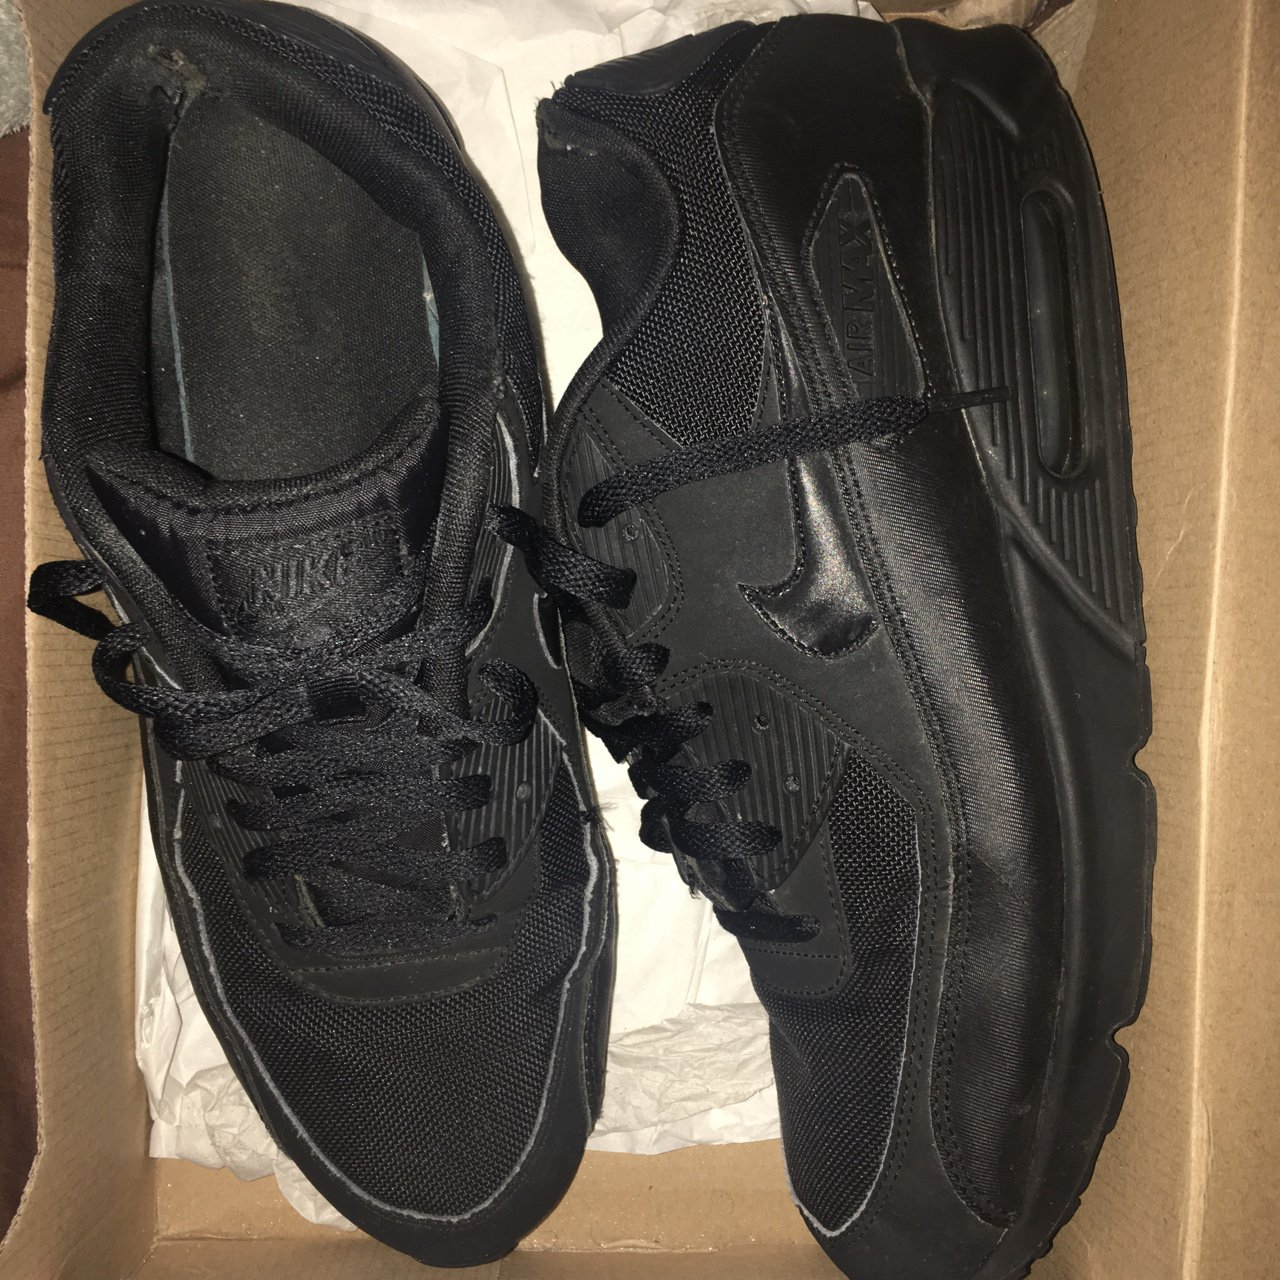 98dd38bf9b4450 Nike AirMax 90 Triple Black Size 11 Good condition  airmax - Depop